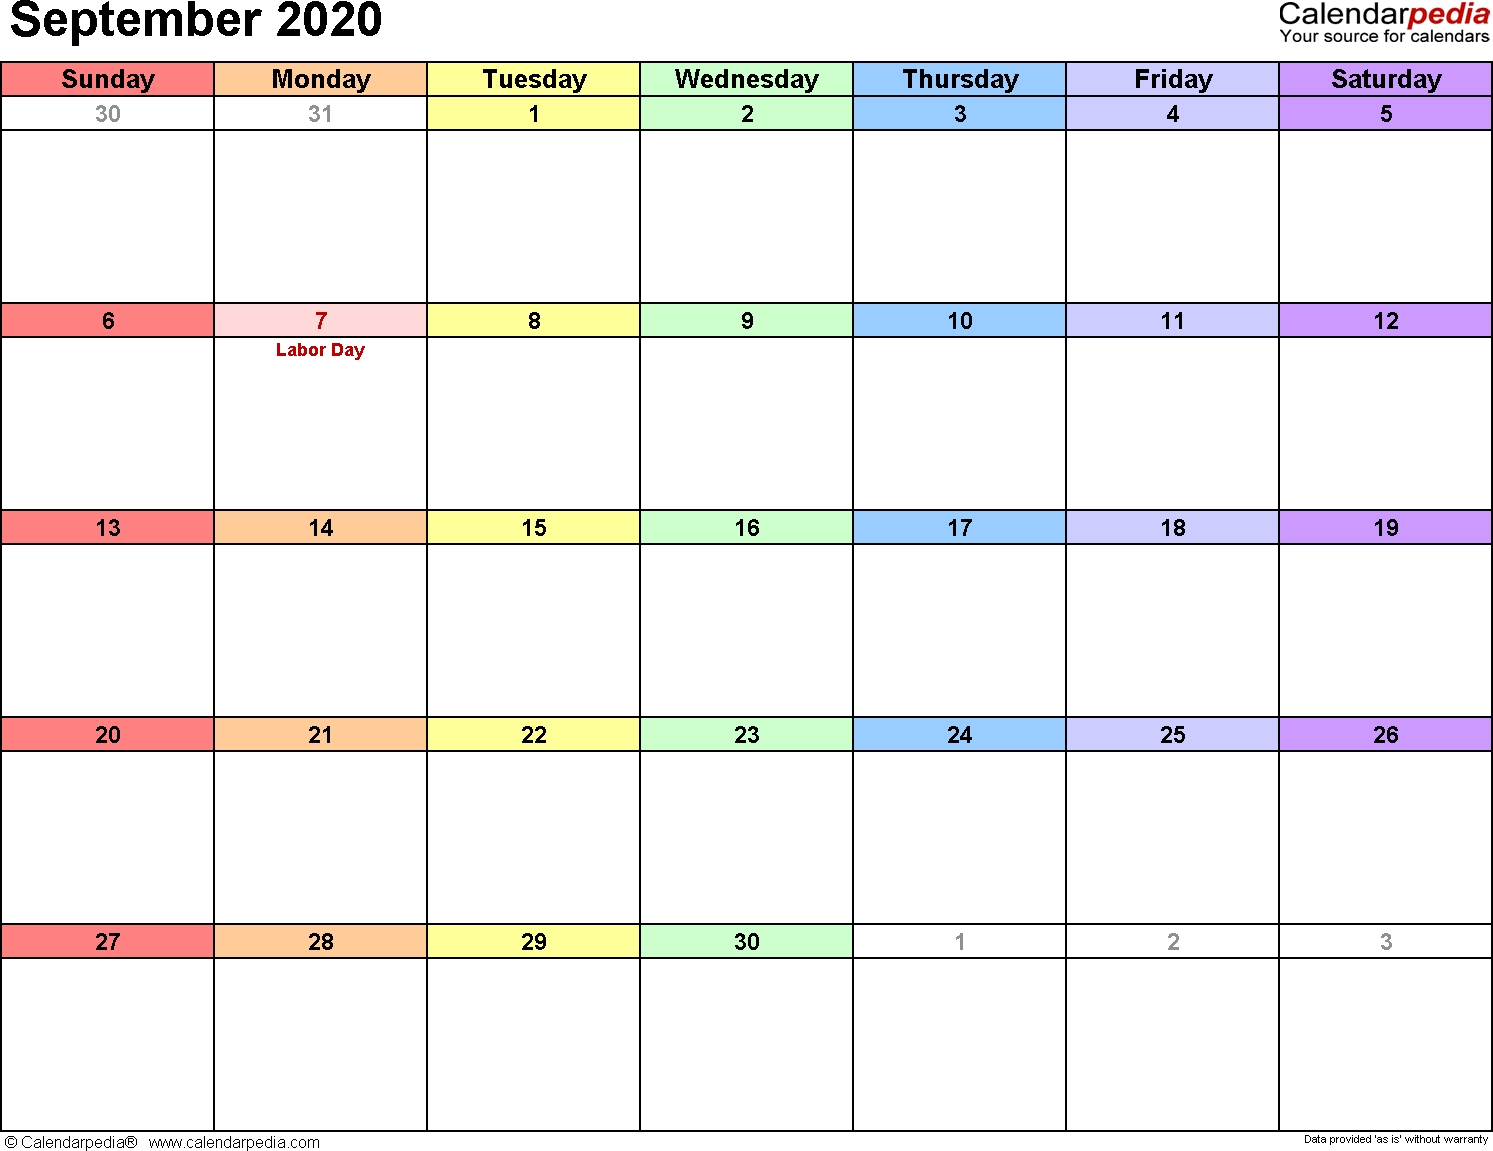 September 2020 Calendars For Word, Excel & Pdf  Full Size September 2020 Calendar Printable